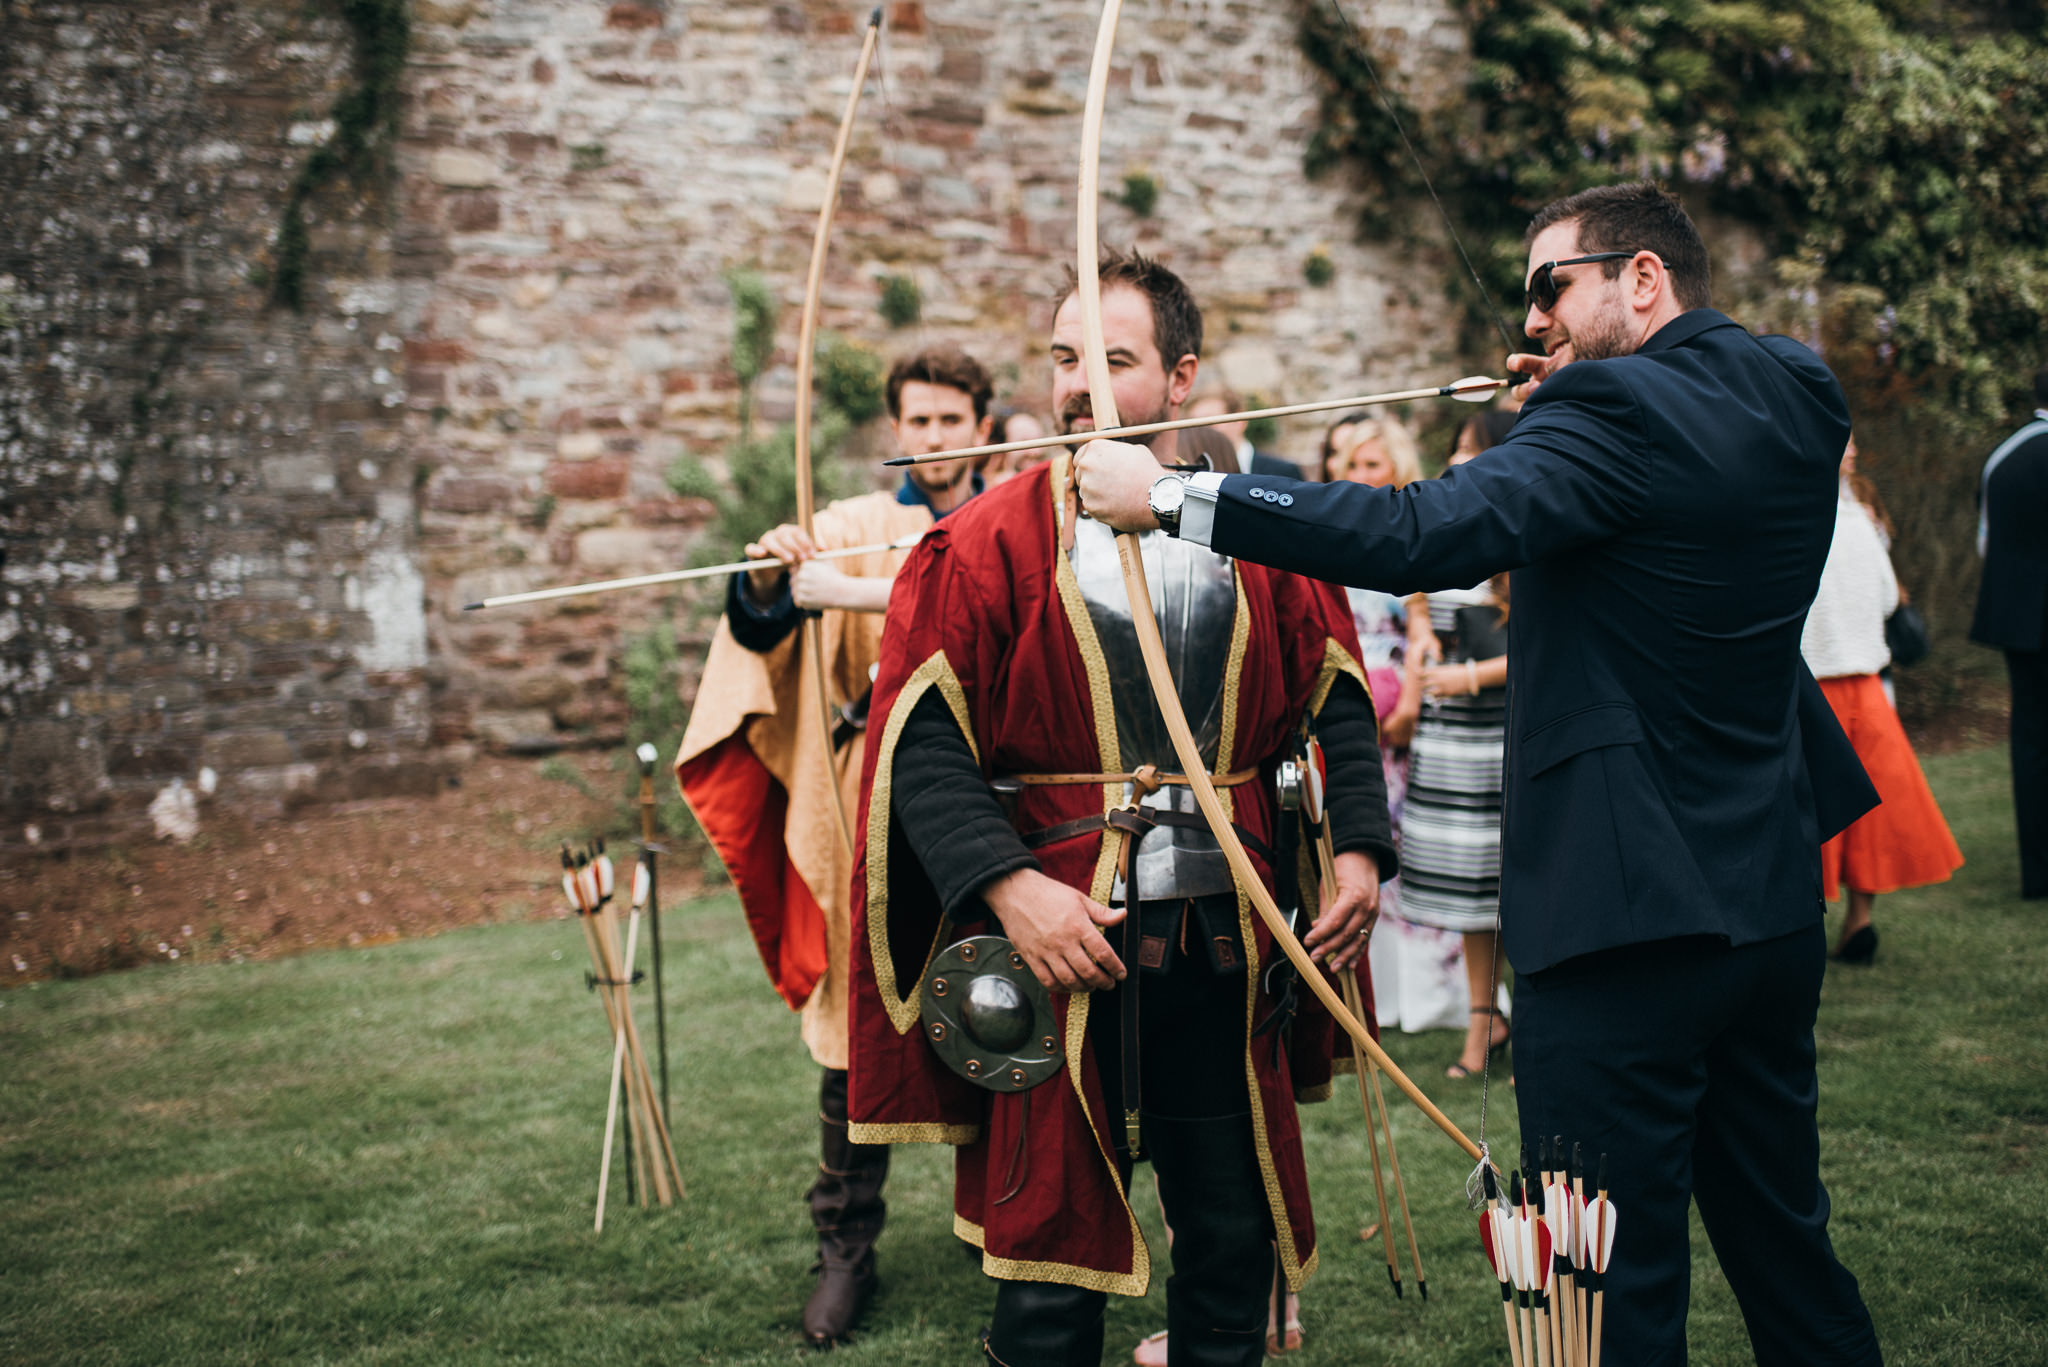 Archery at wedding